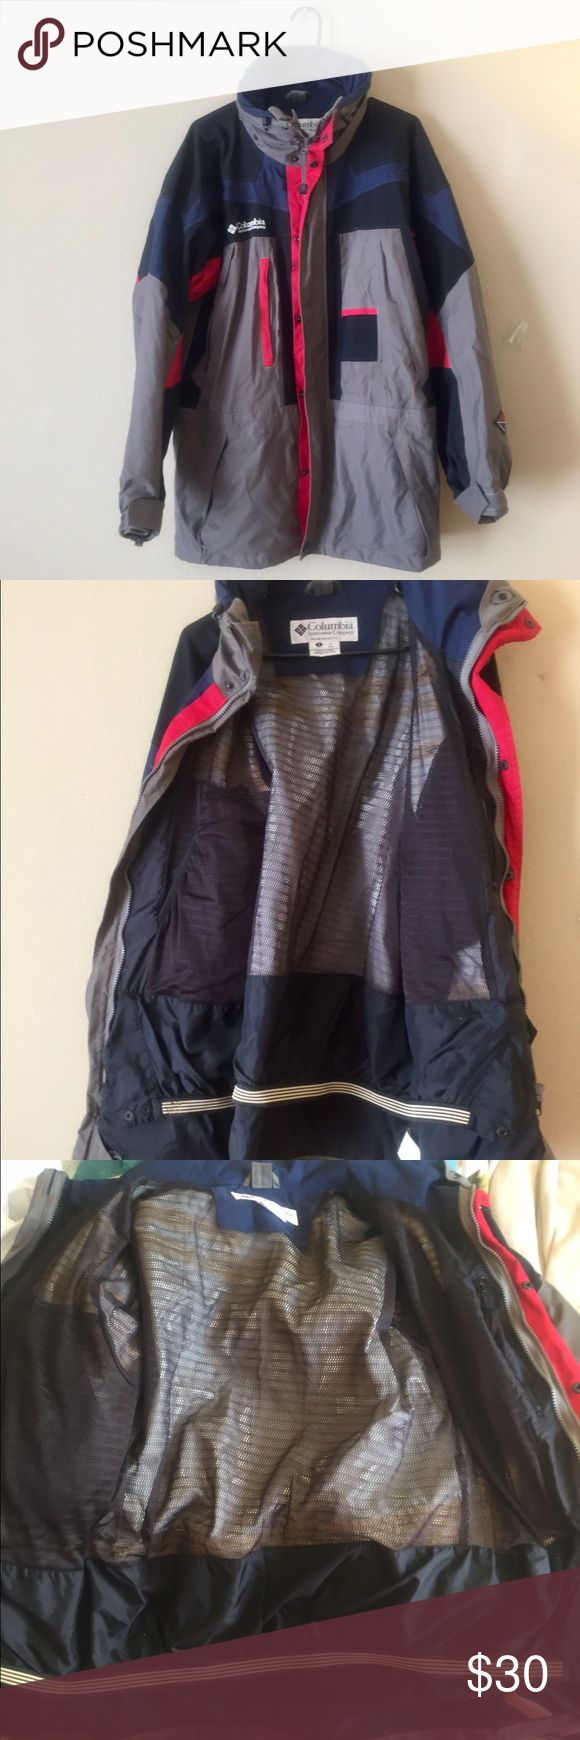 Columbia Omnitech waterproof jacket Sz S ski jack Perfect condition Columbia Men's jacket size Small. Fits a bit bigger. Waterproof and breathable fabric. Columbia Jackets & Coats Ski & Snowboard